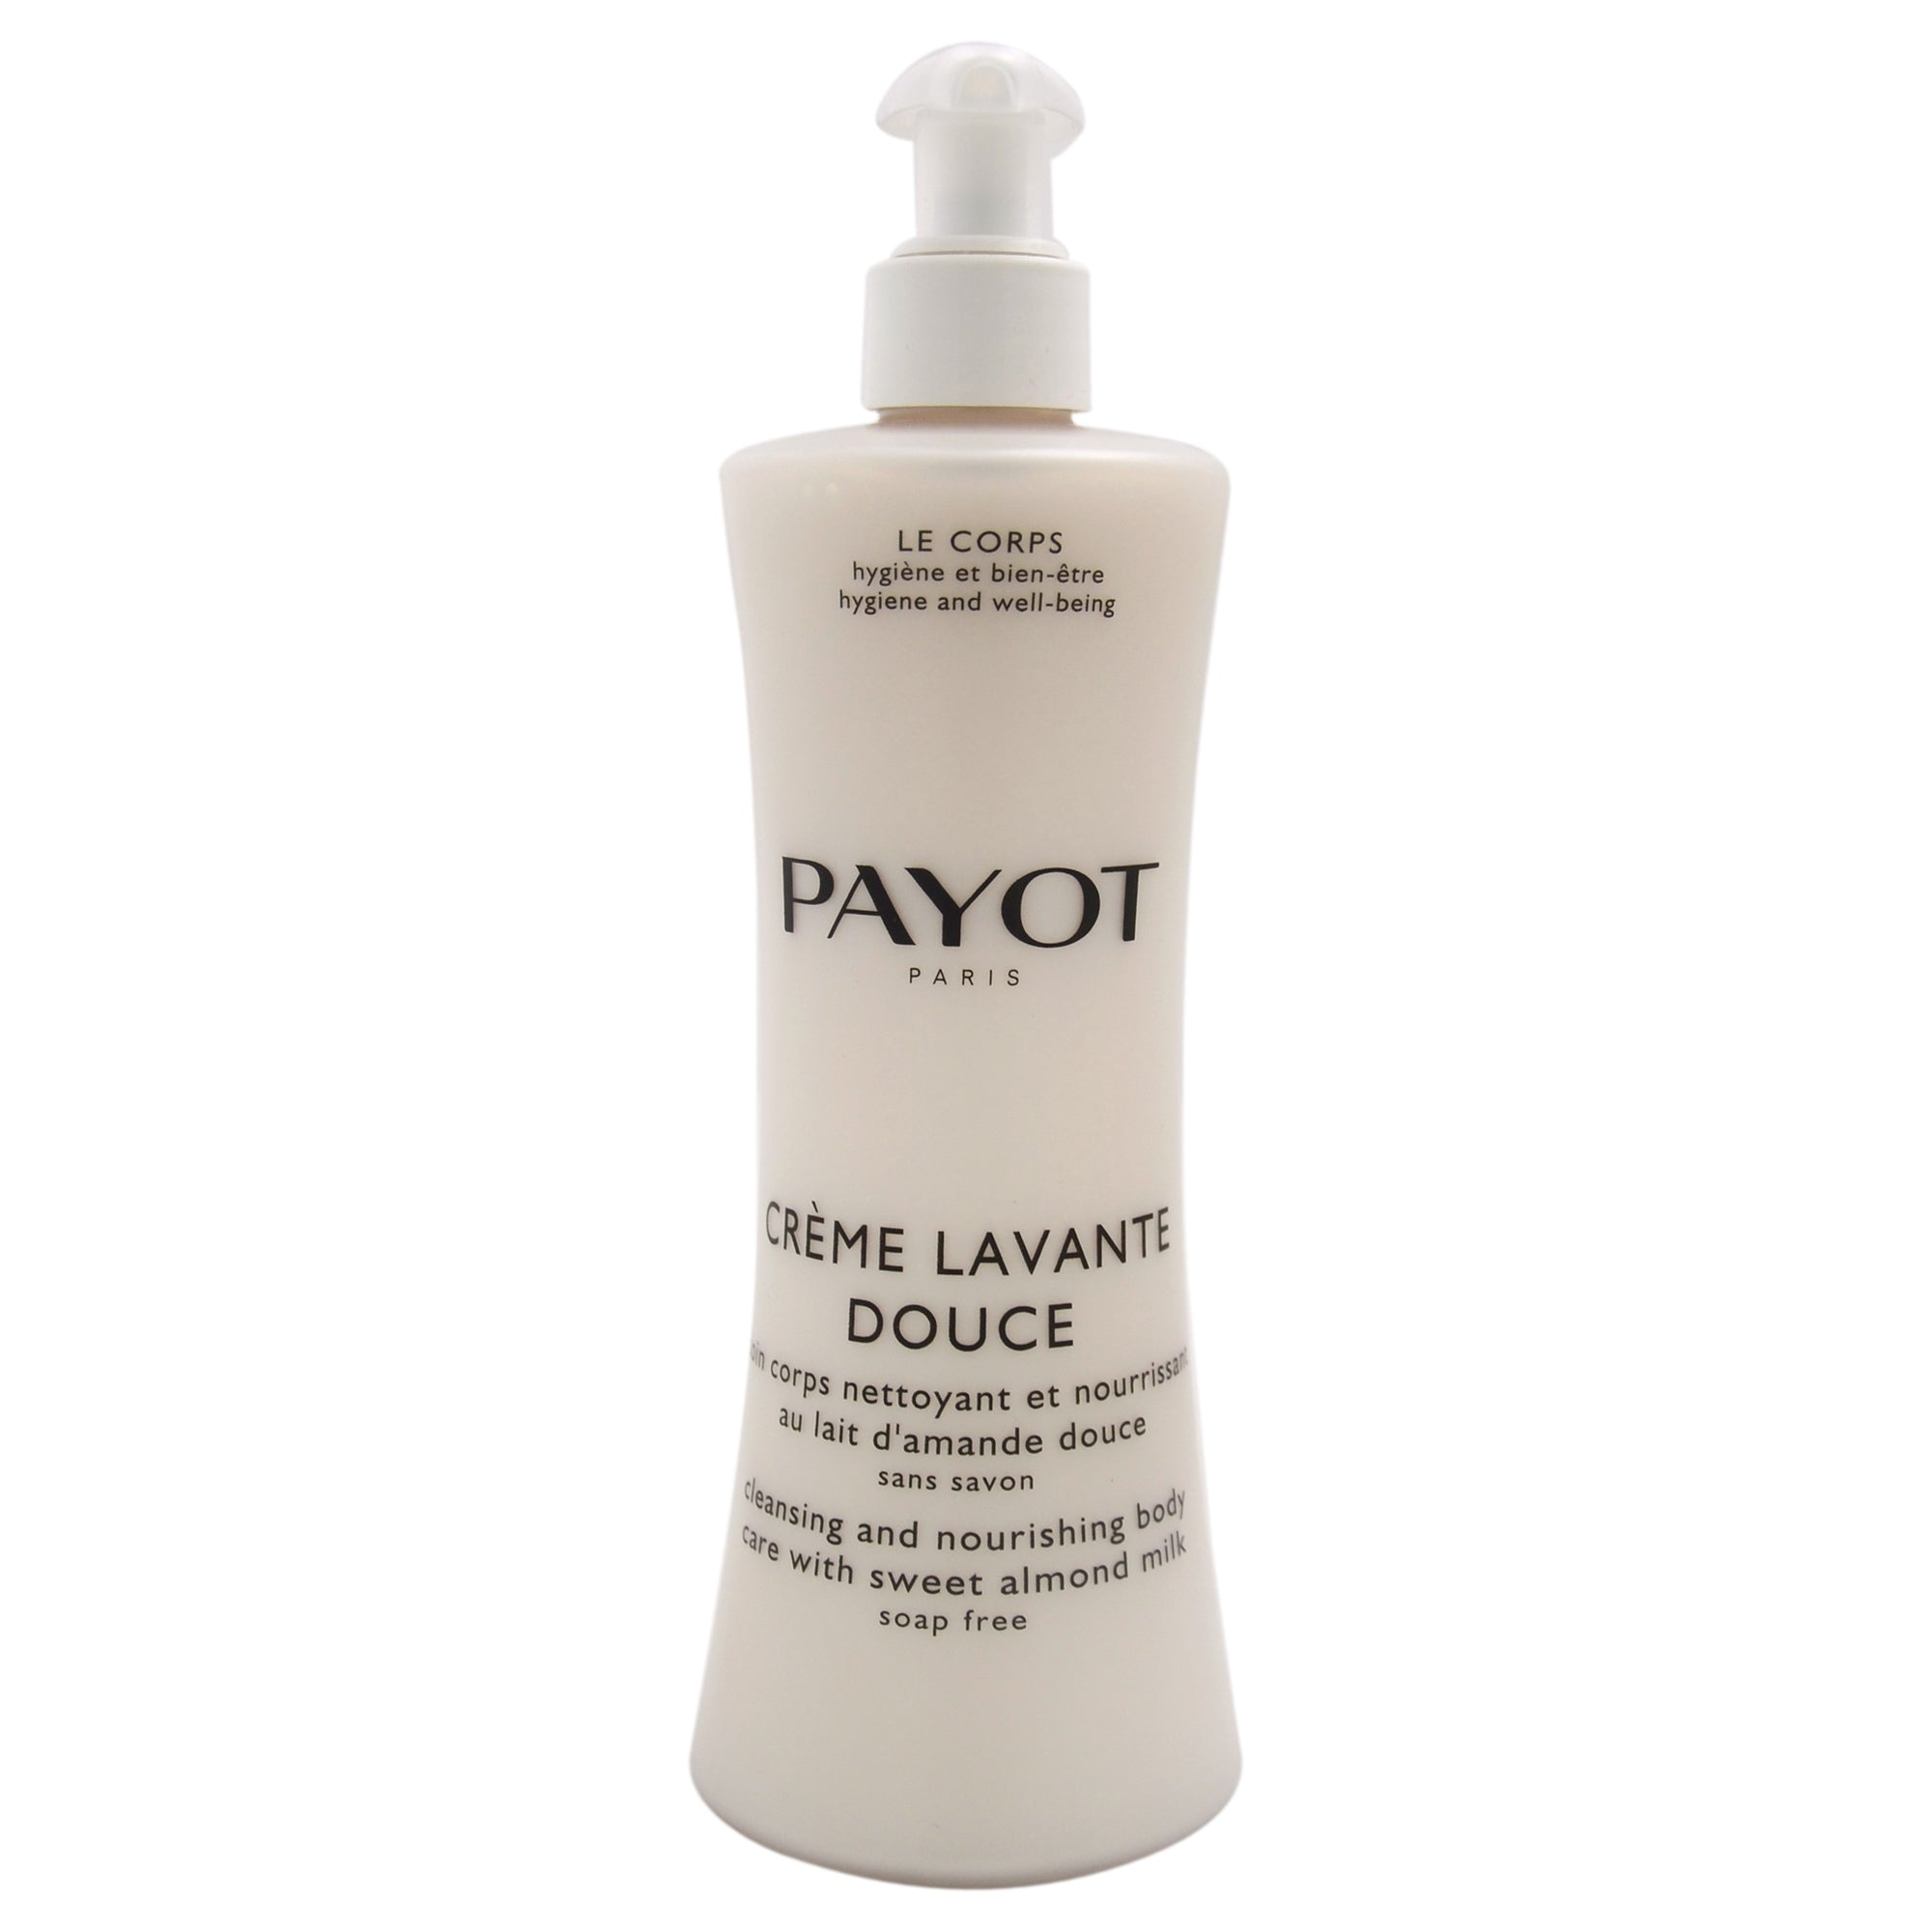 Payot Creme Lavante Douce Cleansing & Nourishing Body